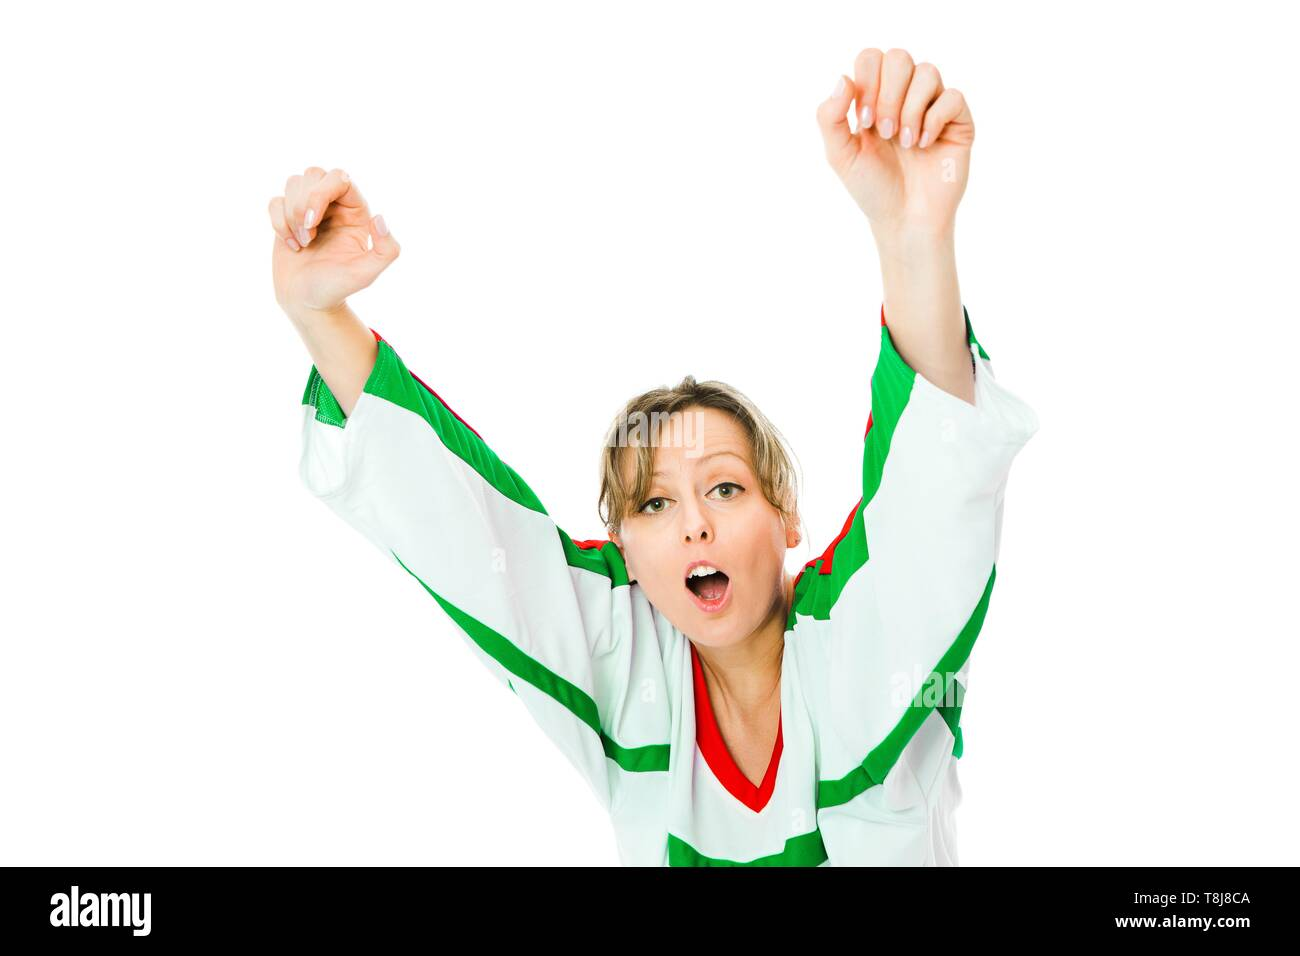 Woman hockey fan in jersey in national color of italy cheer celebrating goal jump and rise up hand white background